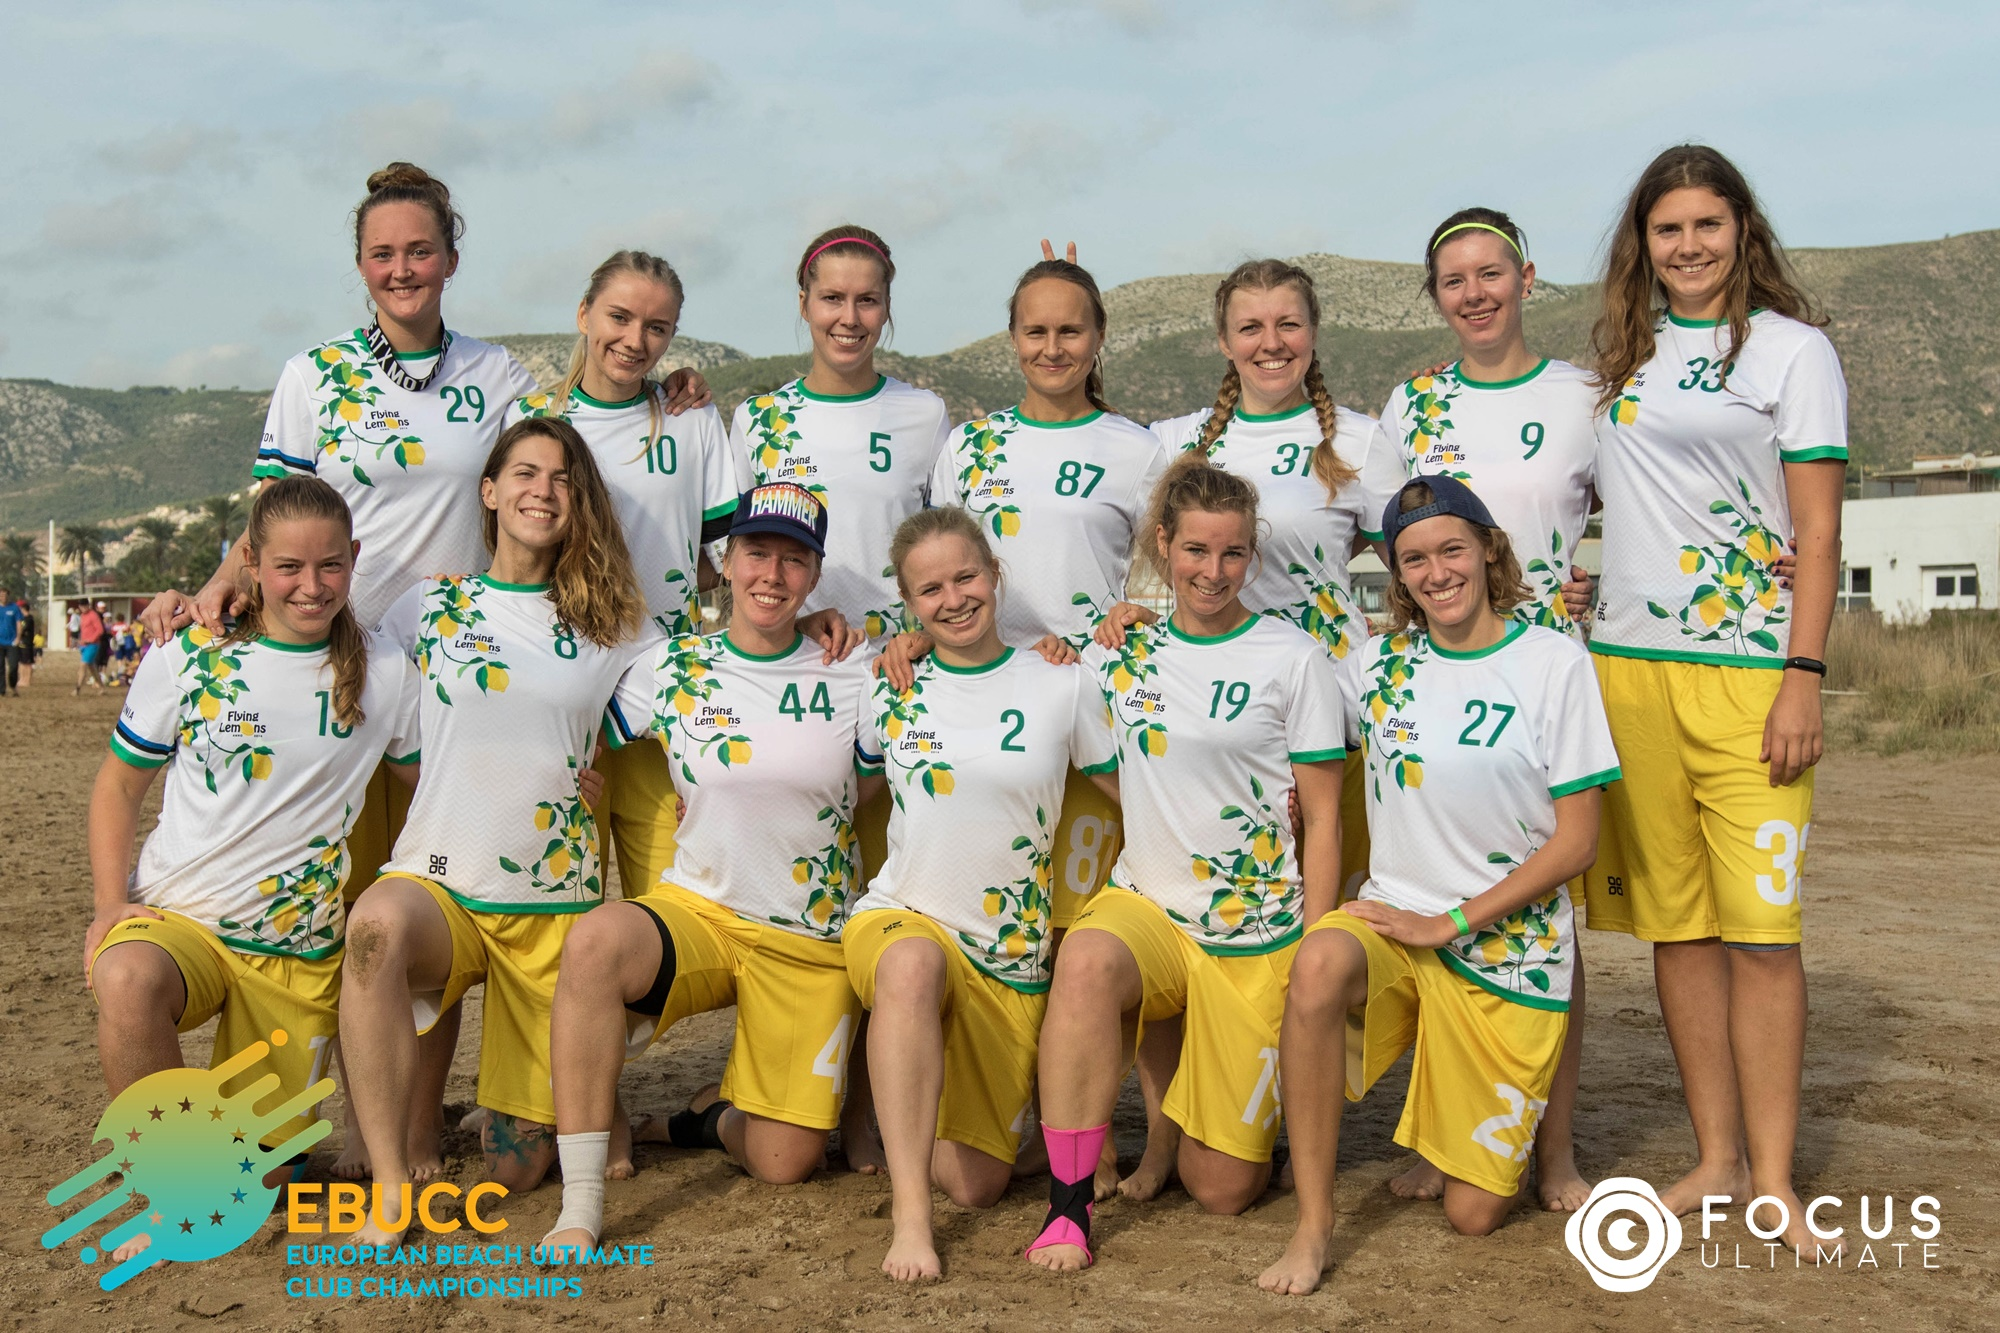 Team picture of Flying Lemons Women